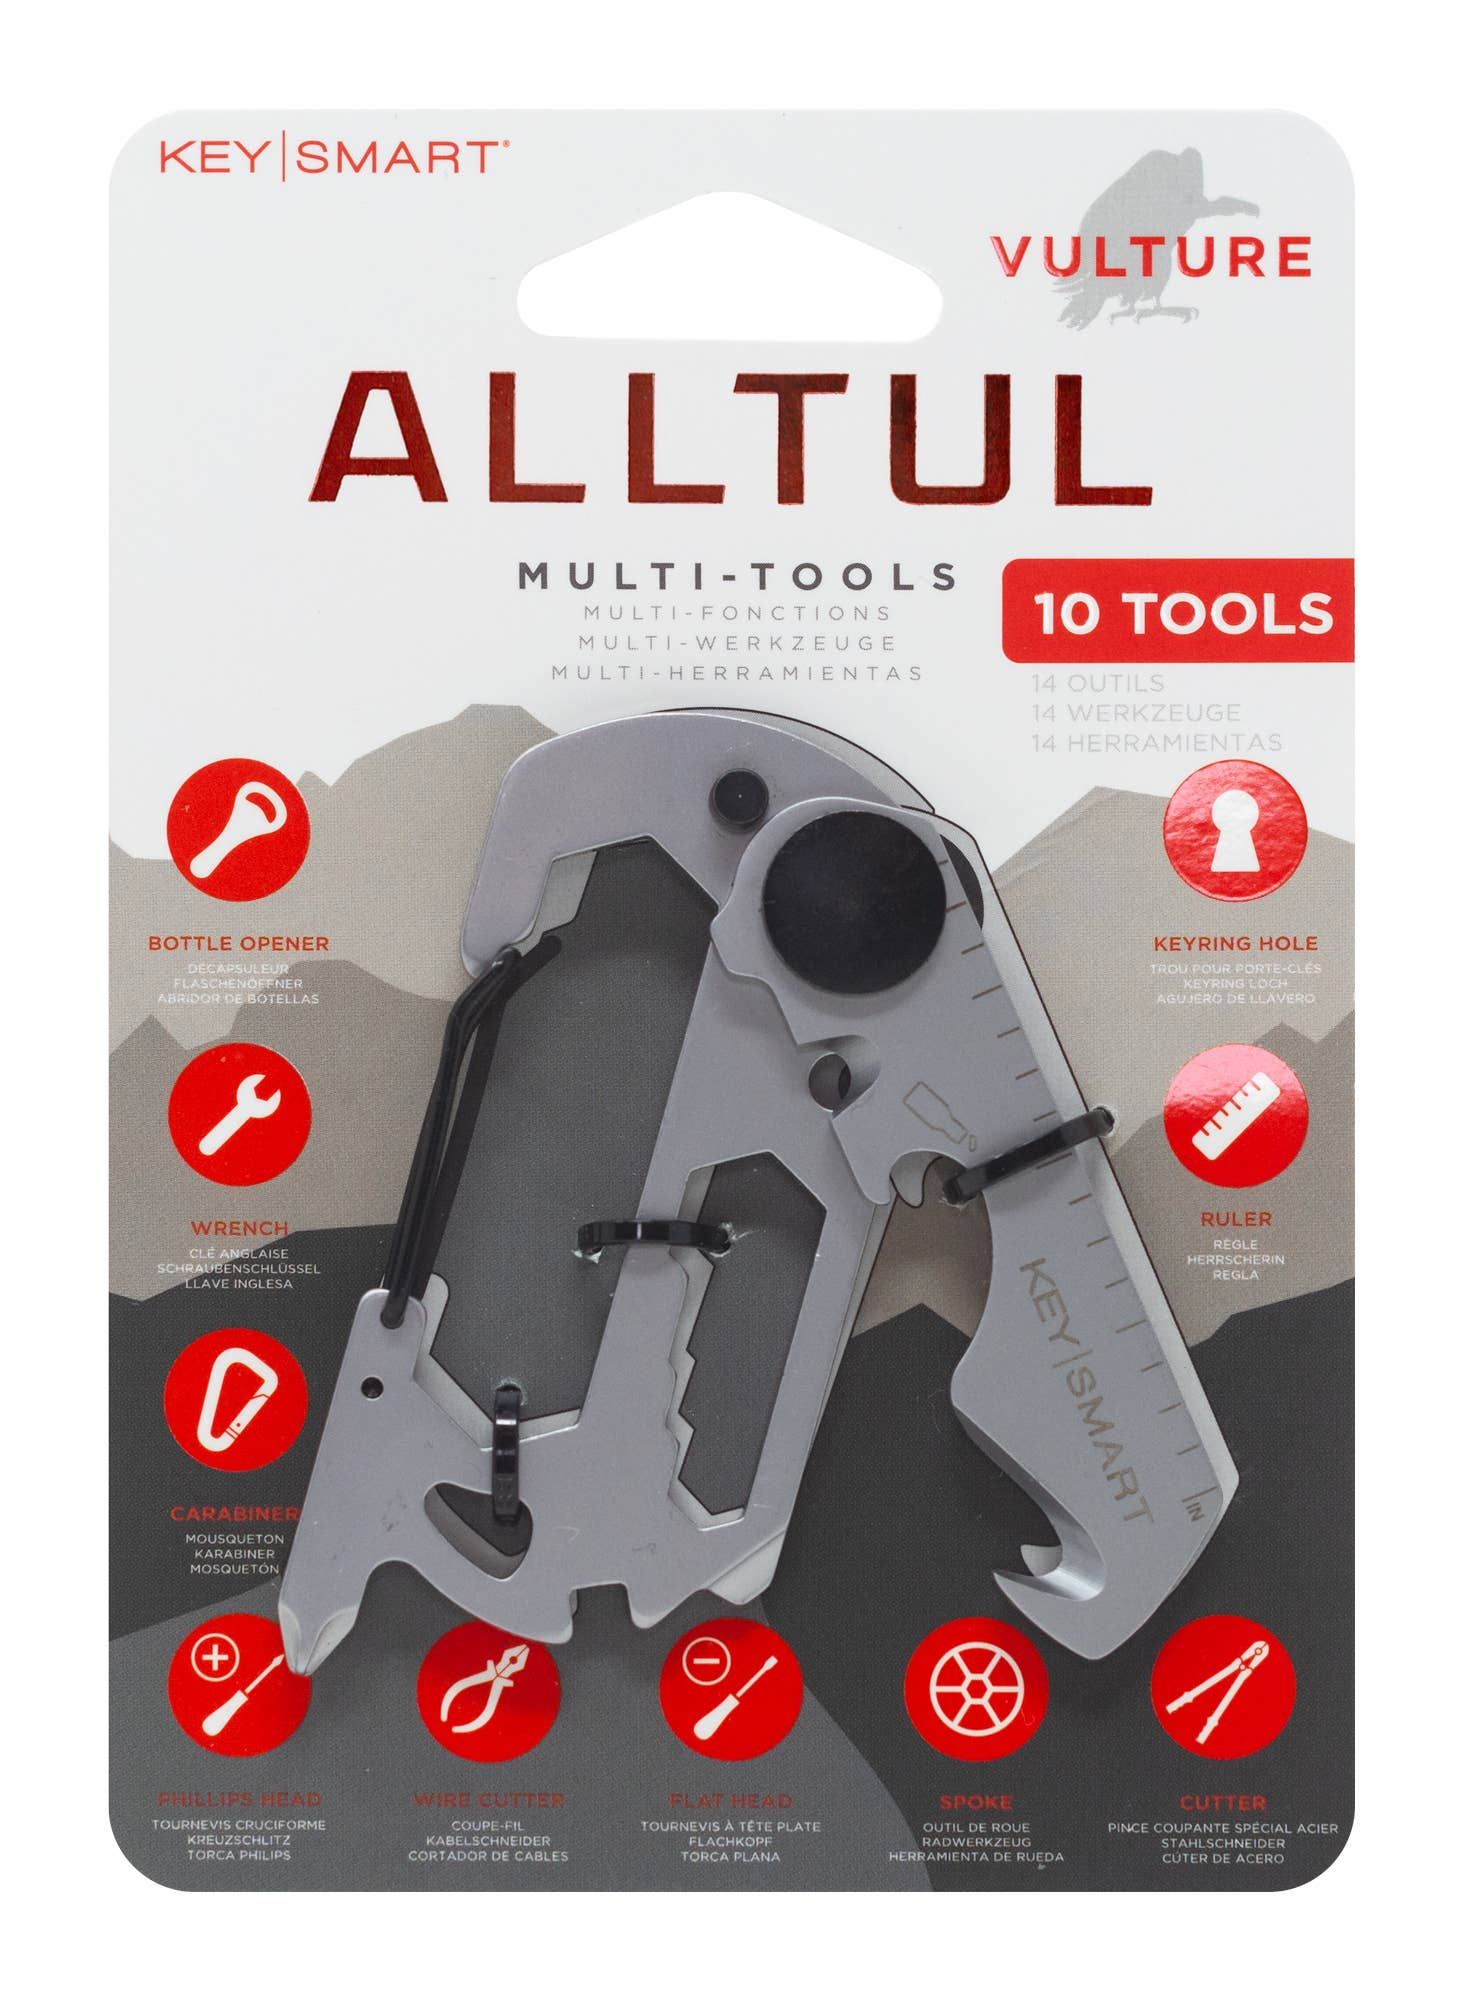 KeySmart - AllTul™ KeyChain Animal Multi-Tool | Vulture